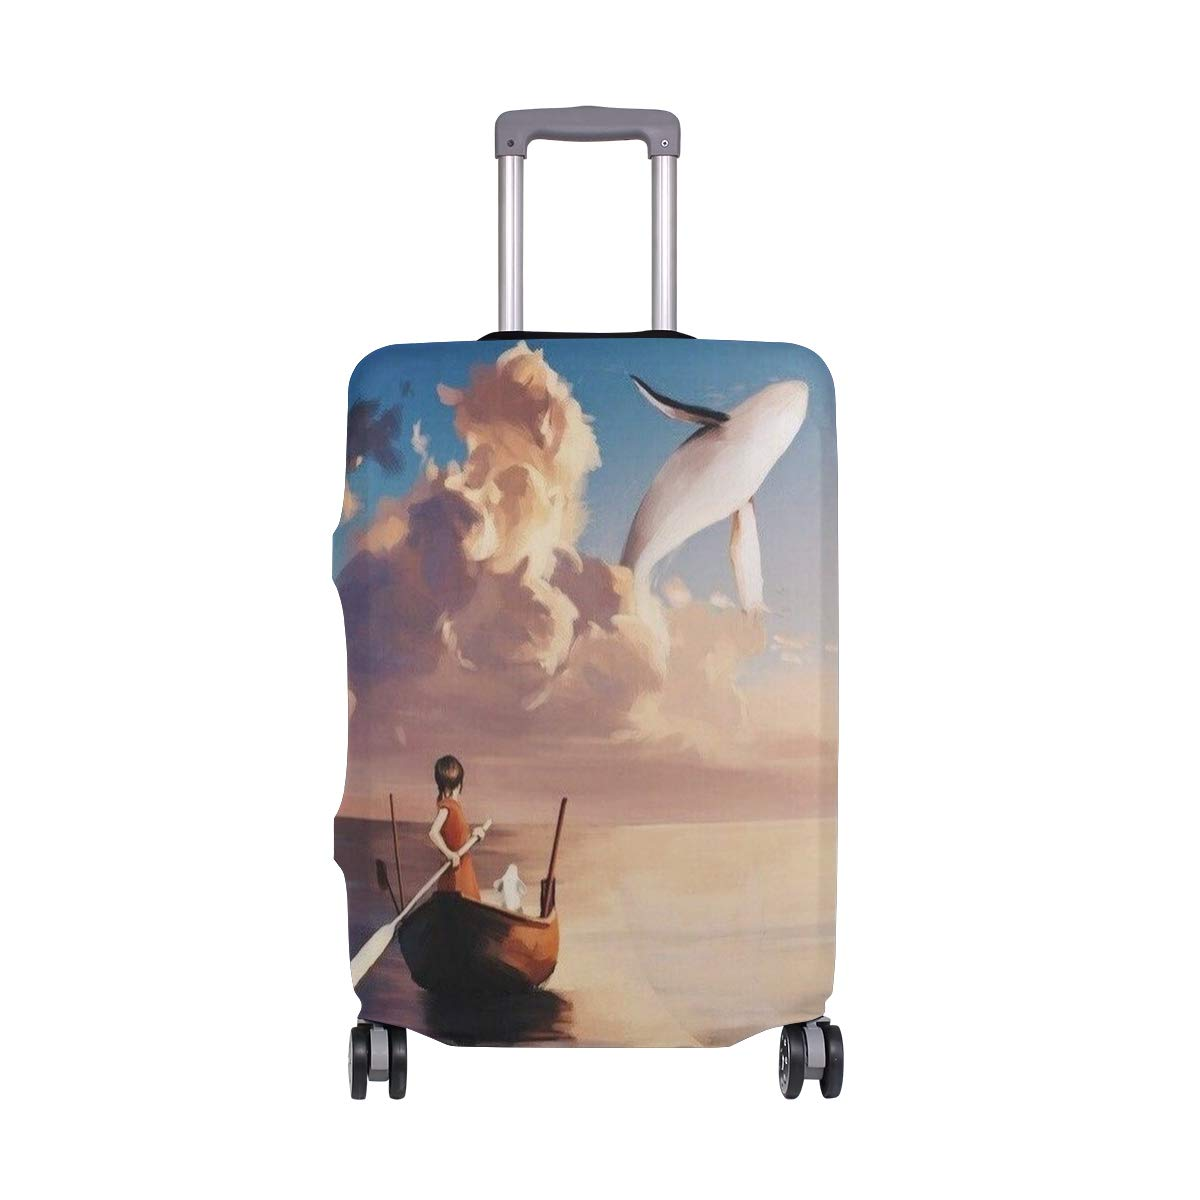 Creative Painting Sea Boating Little Girl And Flying Whale suitcase cover elastic suitcase cover zipper luggage case removable cleaning suitable for 29-32 trunk cover